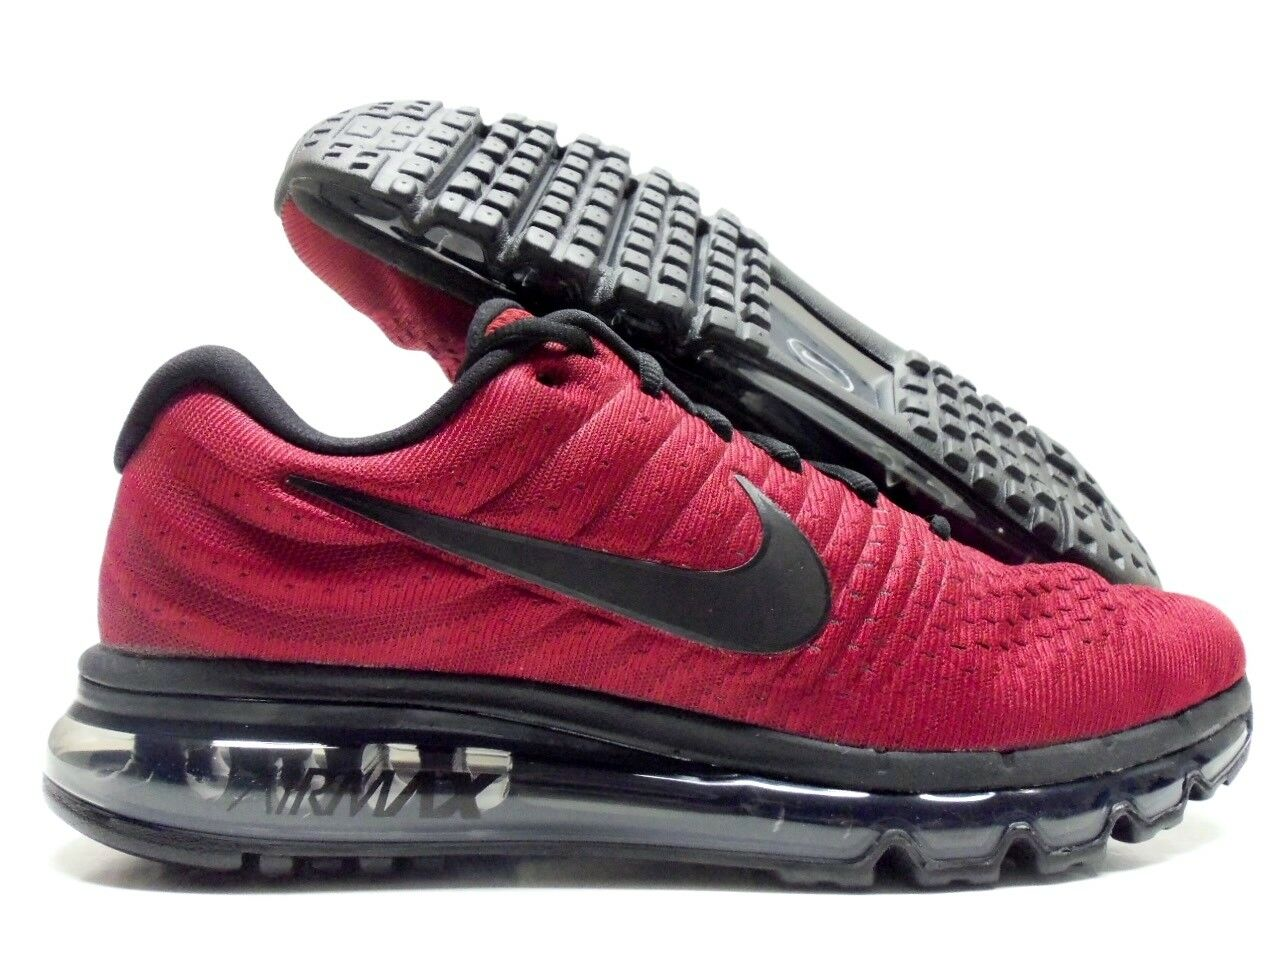 NIKE AIR MAX 2017 TEAM REDBLACK DARK GREY SIZE MEN'S 9 [849559 603]